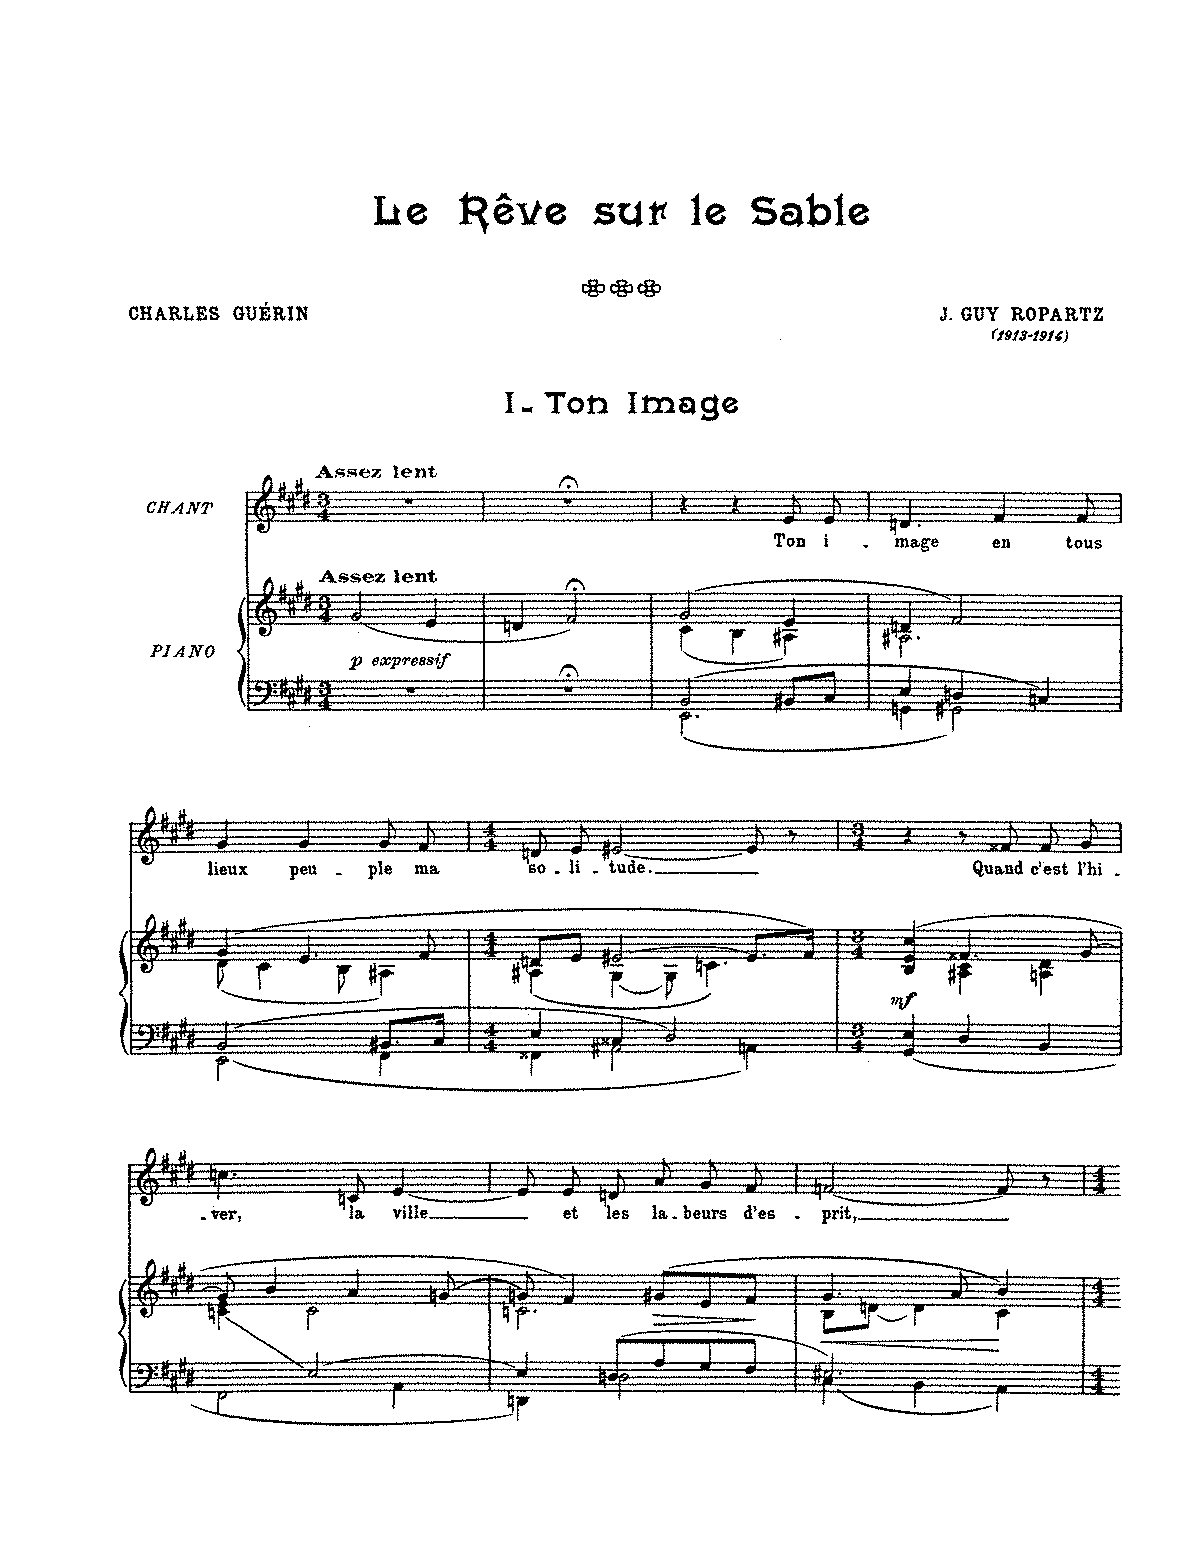 PMLP129983-Ropartz - Le rêve sur le sable (voice and piano).pdf